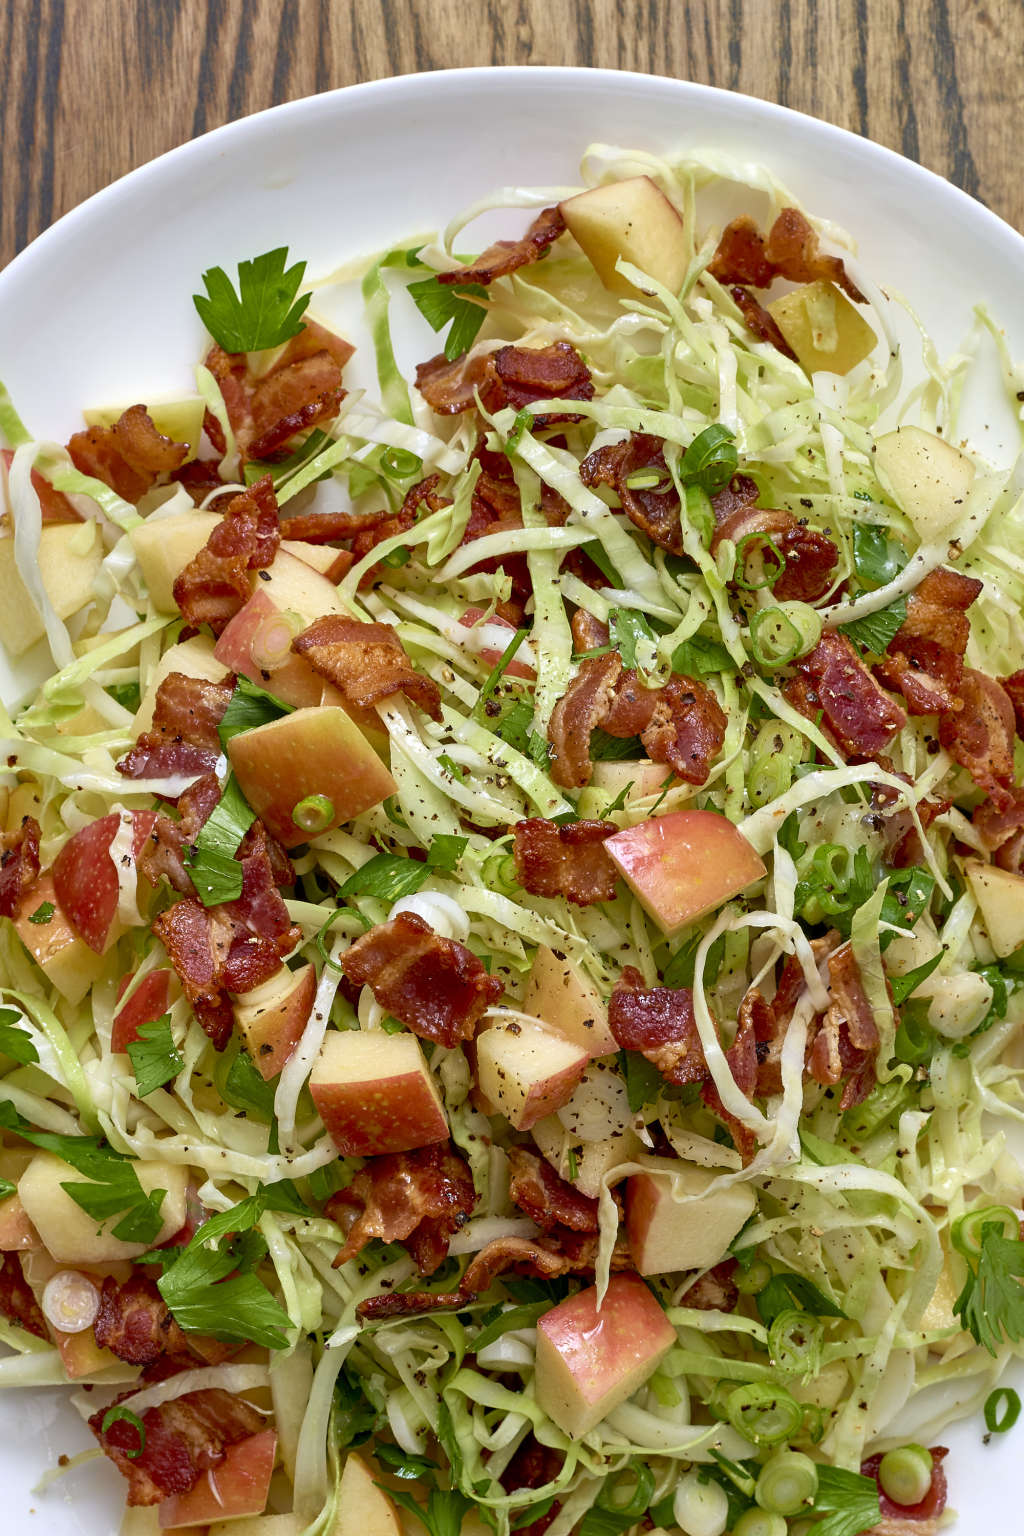 Apple-Bacon Slaw Is the Only Salad You Need This Autumn